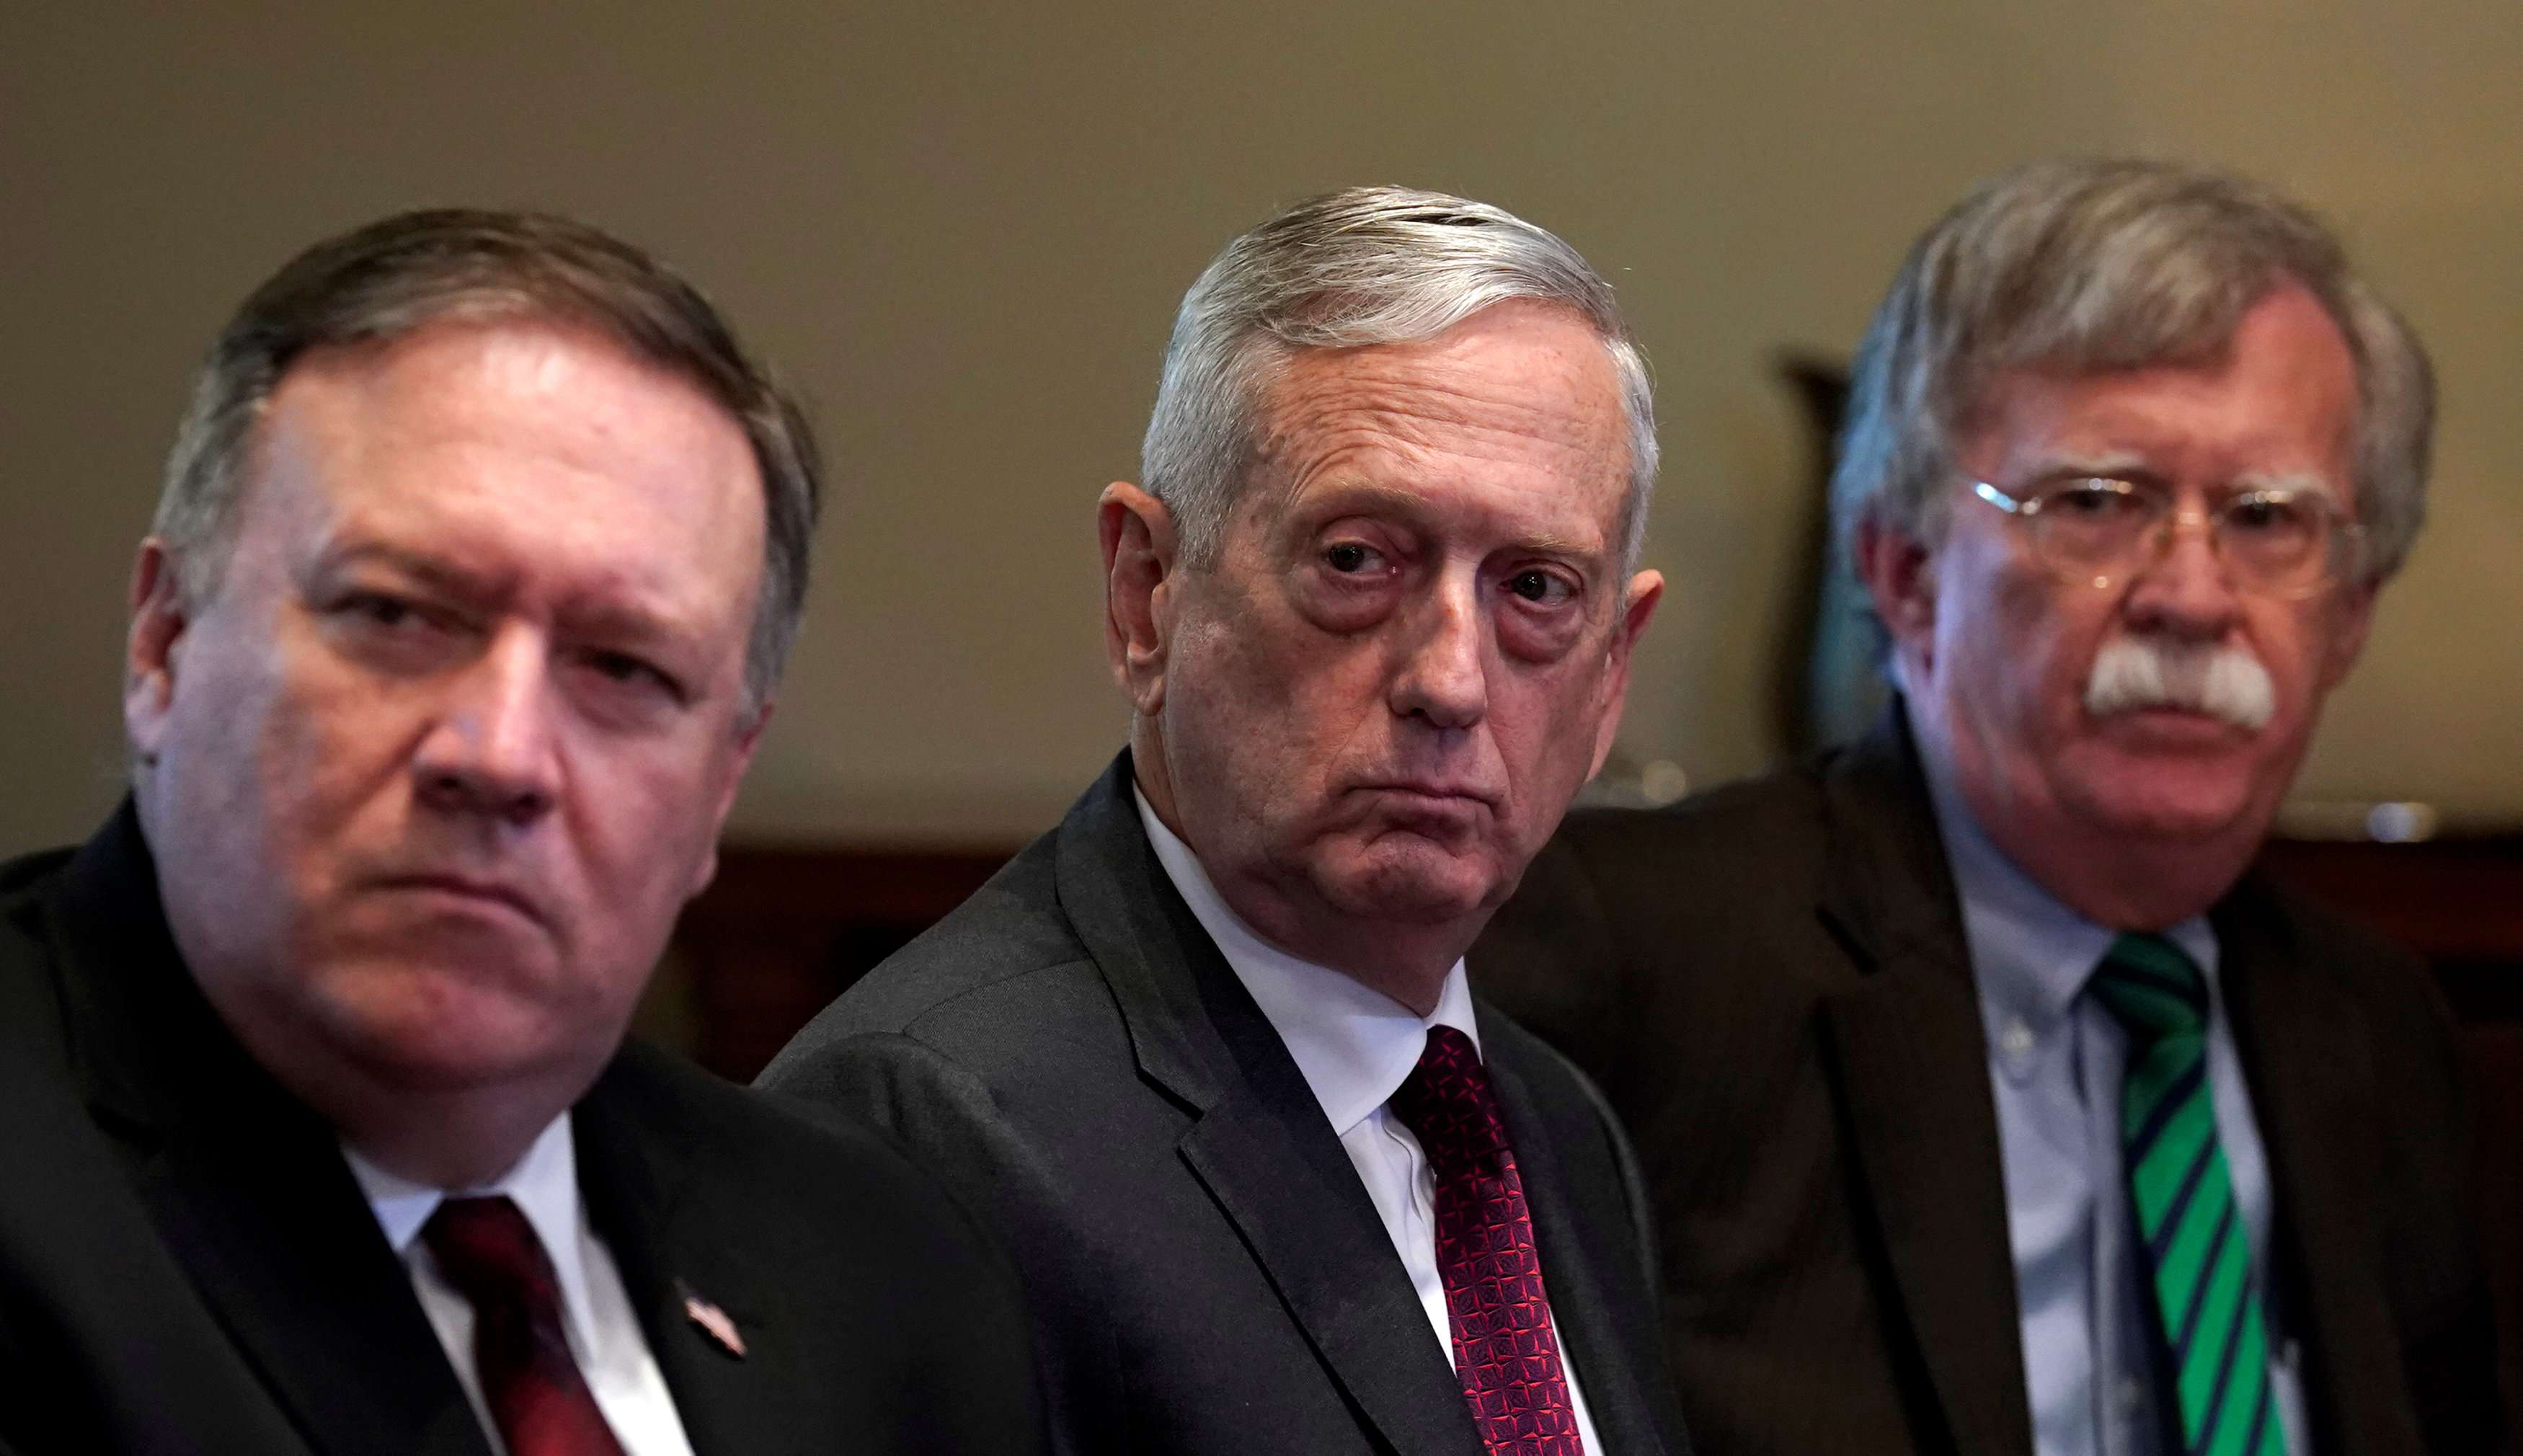 Capricious unilateralism. (L-R) US Secretary of State Mike Pompeo, Secretary of Defence James Mattis and National Security Adviser John Bolton attend a meeting at the White House, on May 17. (Reuters)